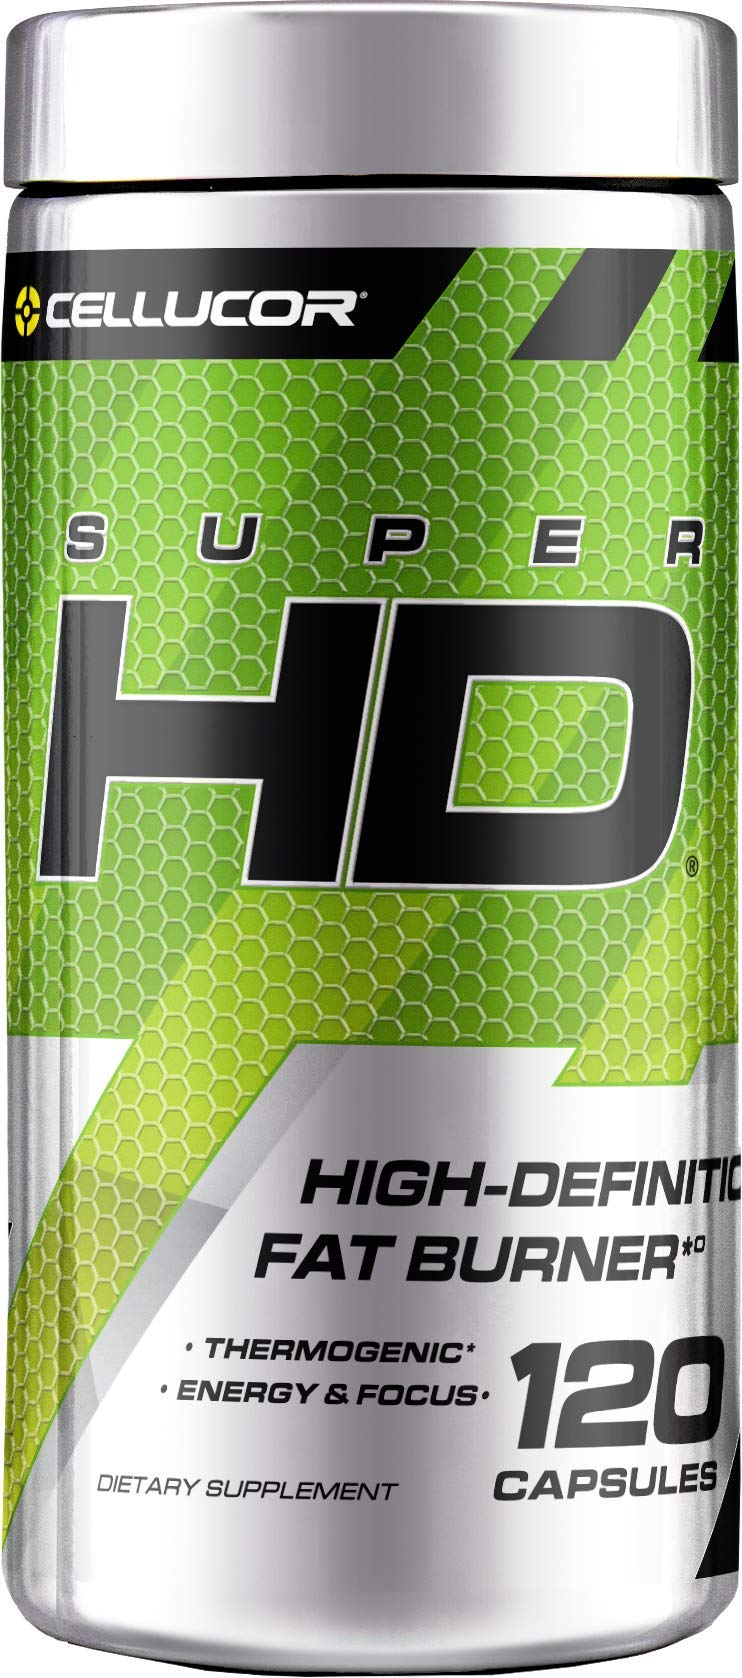 Cellucor SuperHD Thermogenic Fat Burner & Energy Booster for Men & Women, Antioxidant & Weight Loss Supplement with Nootropic Focus, 120 Capsules